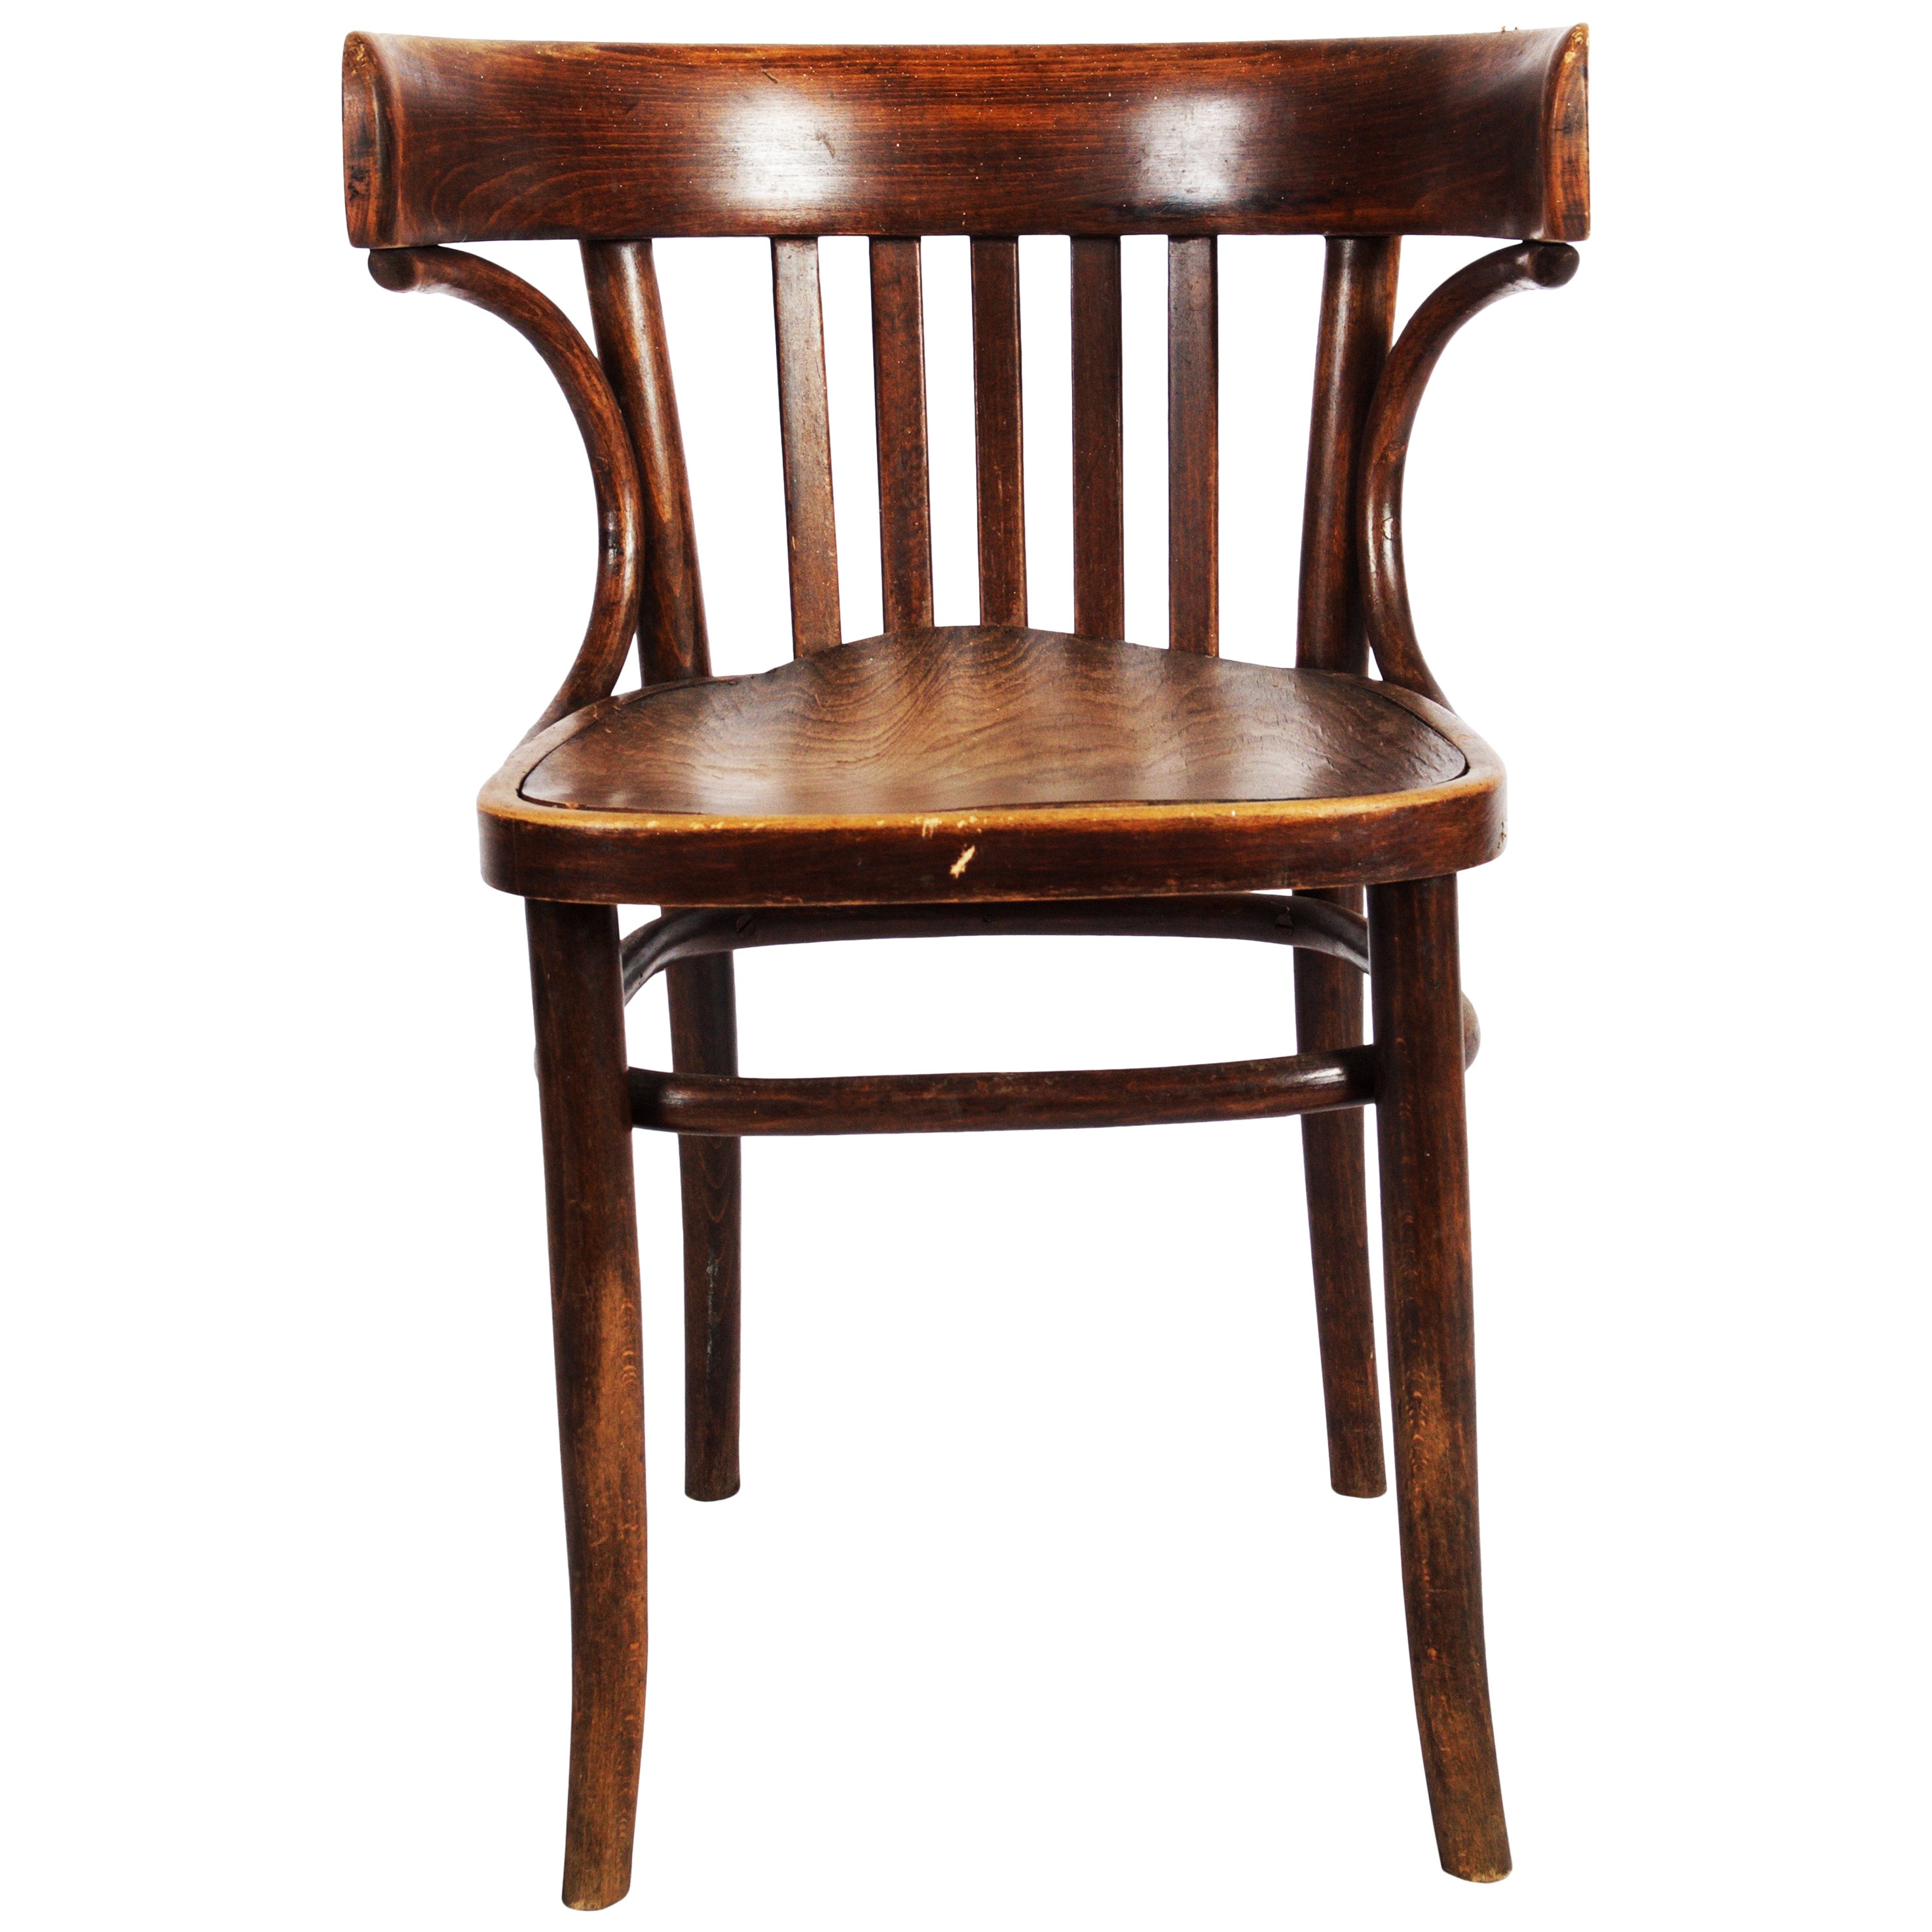 Classical Thonet Bistro Or Cafe Armchair, 1920s For Sale At 1stdibs